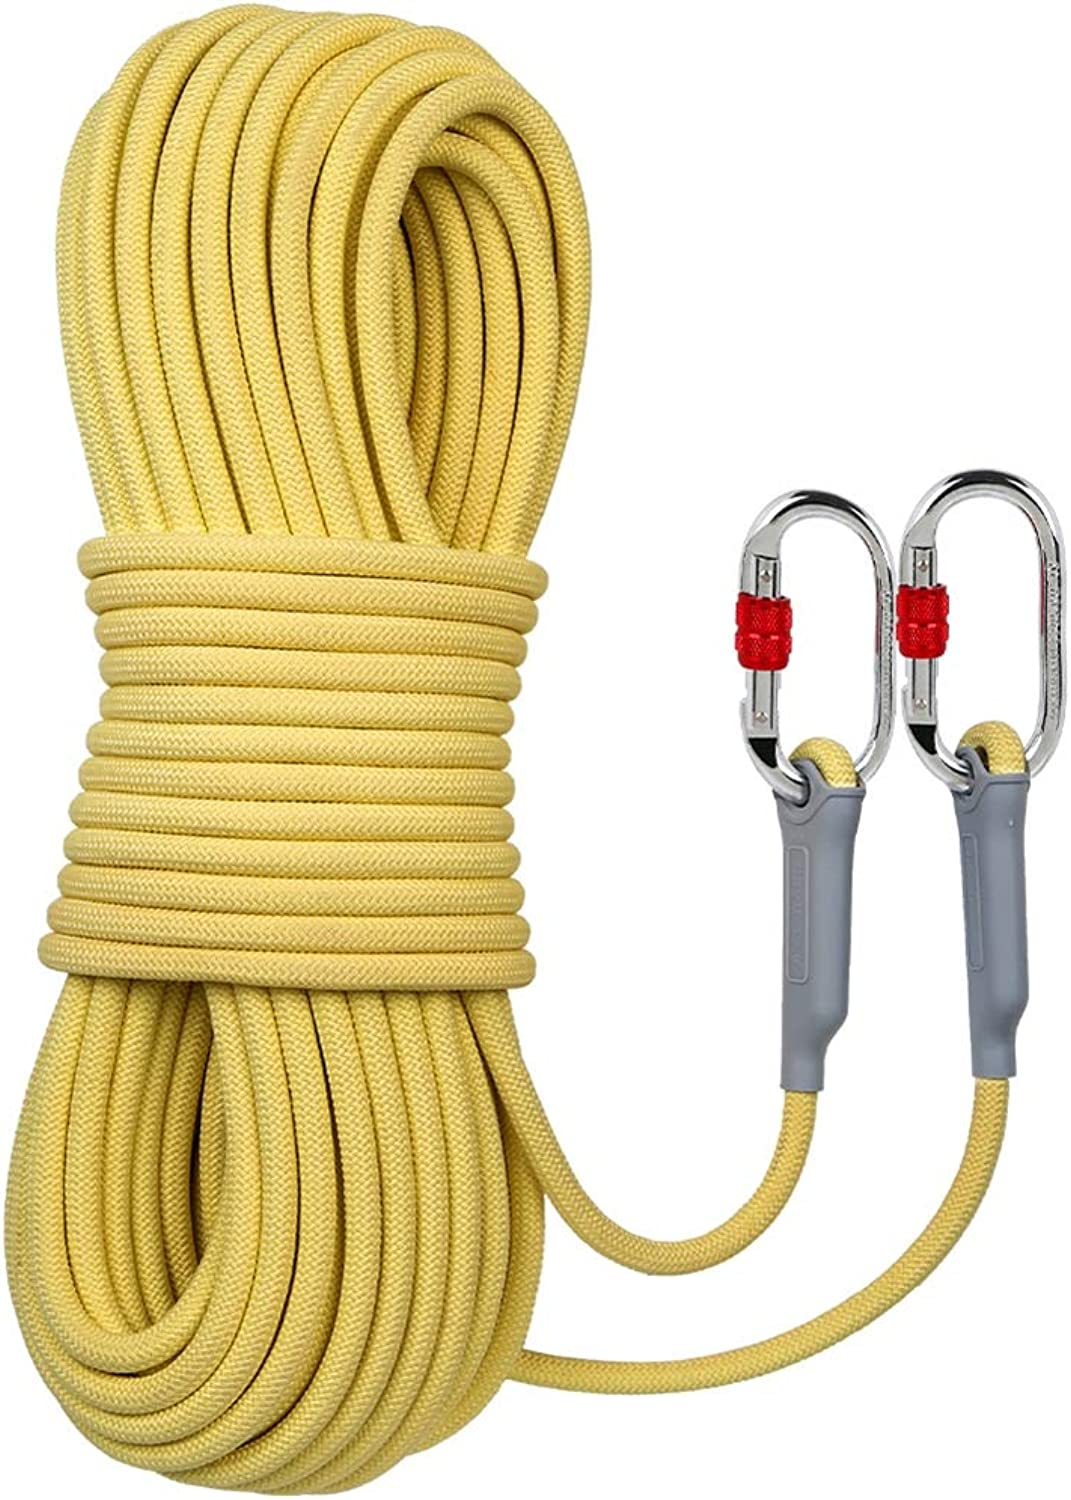 10M Static Rope, Fireproof WearResistant HighRise Escape Rope Outdoor Rope HighAltitude Safety Rope Heavy Duty Rope Safety Durable, 10.5mm,10m